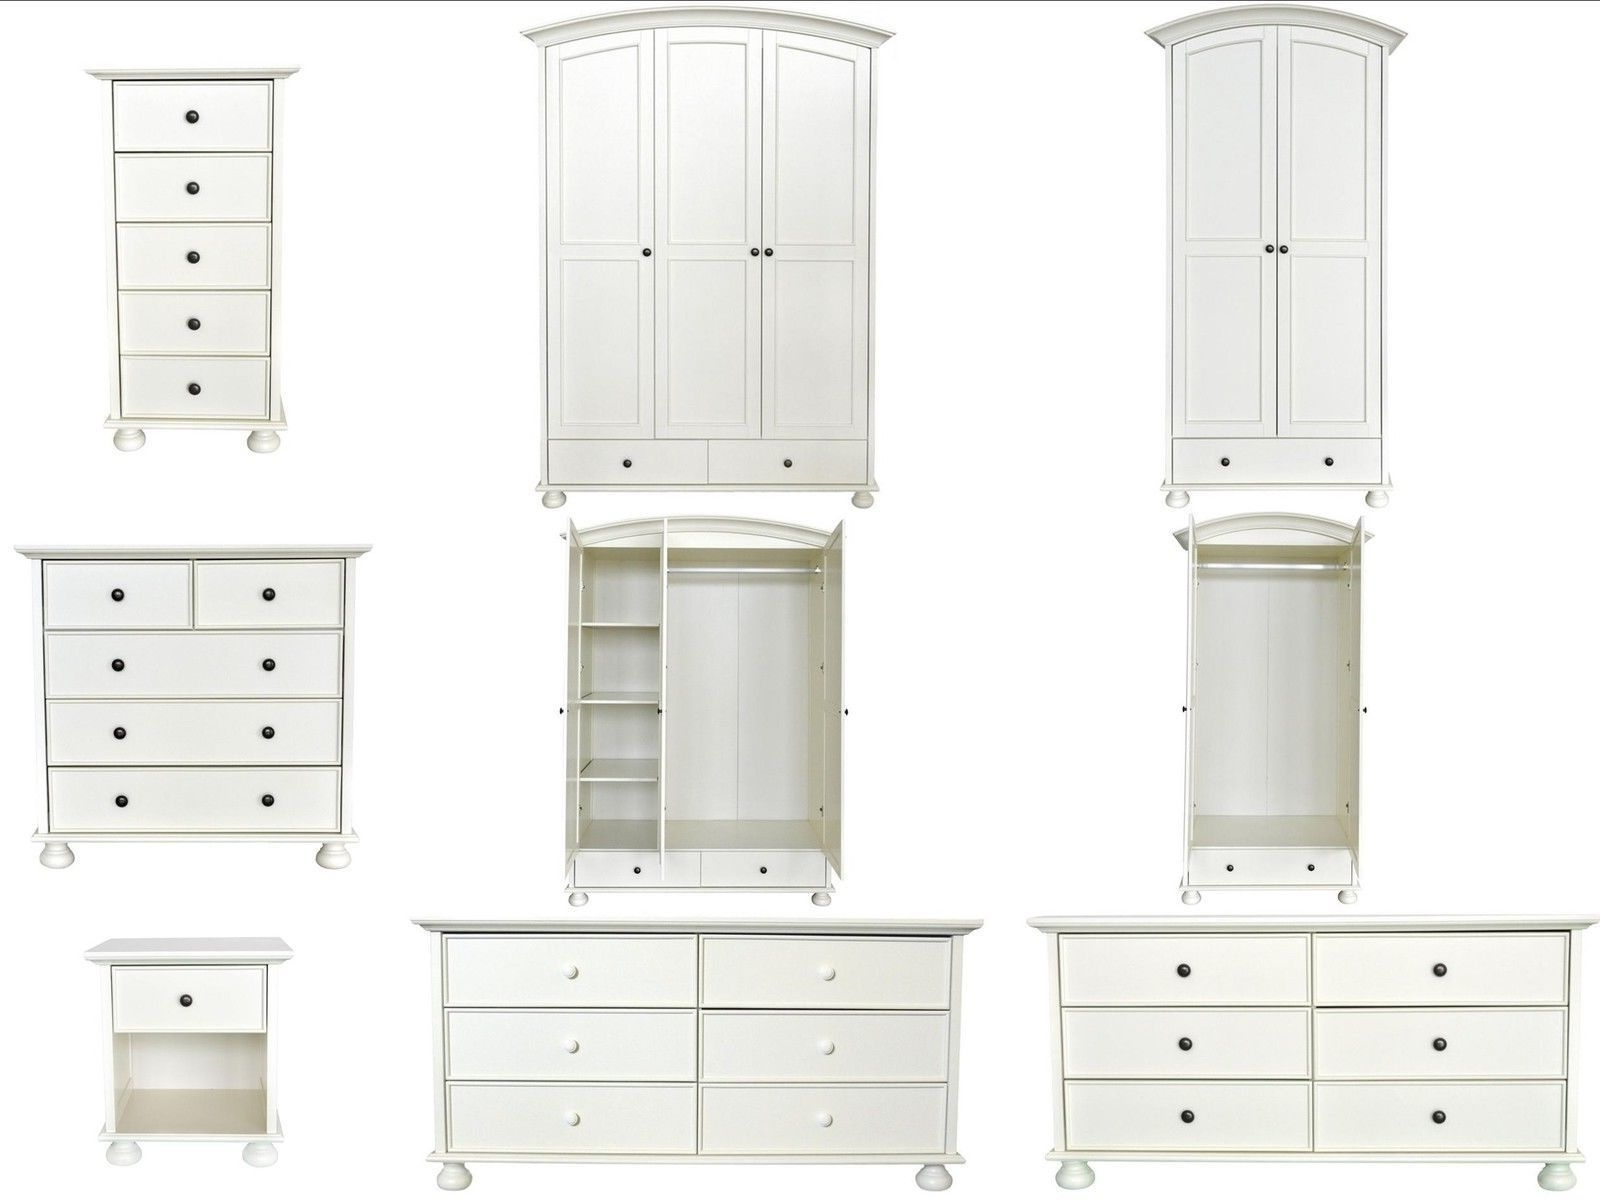 White Wood Wardrobes For Sale Wooden Uk Wardrobe Ebay Beautiful Within Preferred White Wood Wardrobes (View 12 of 15)